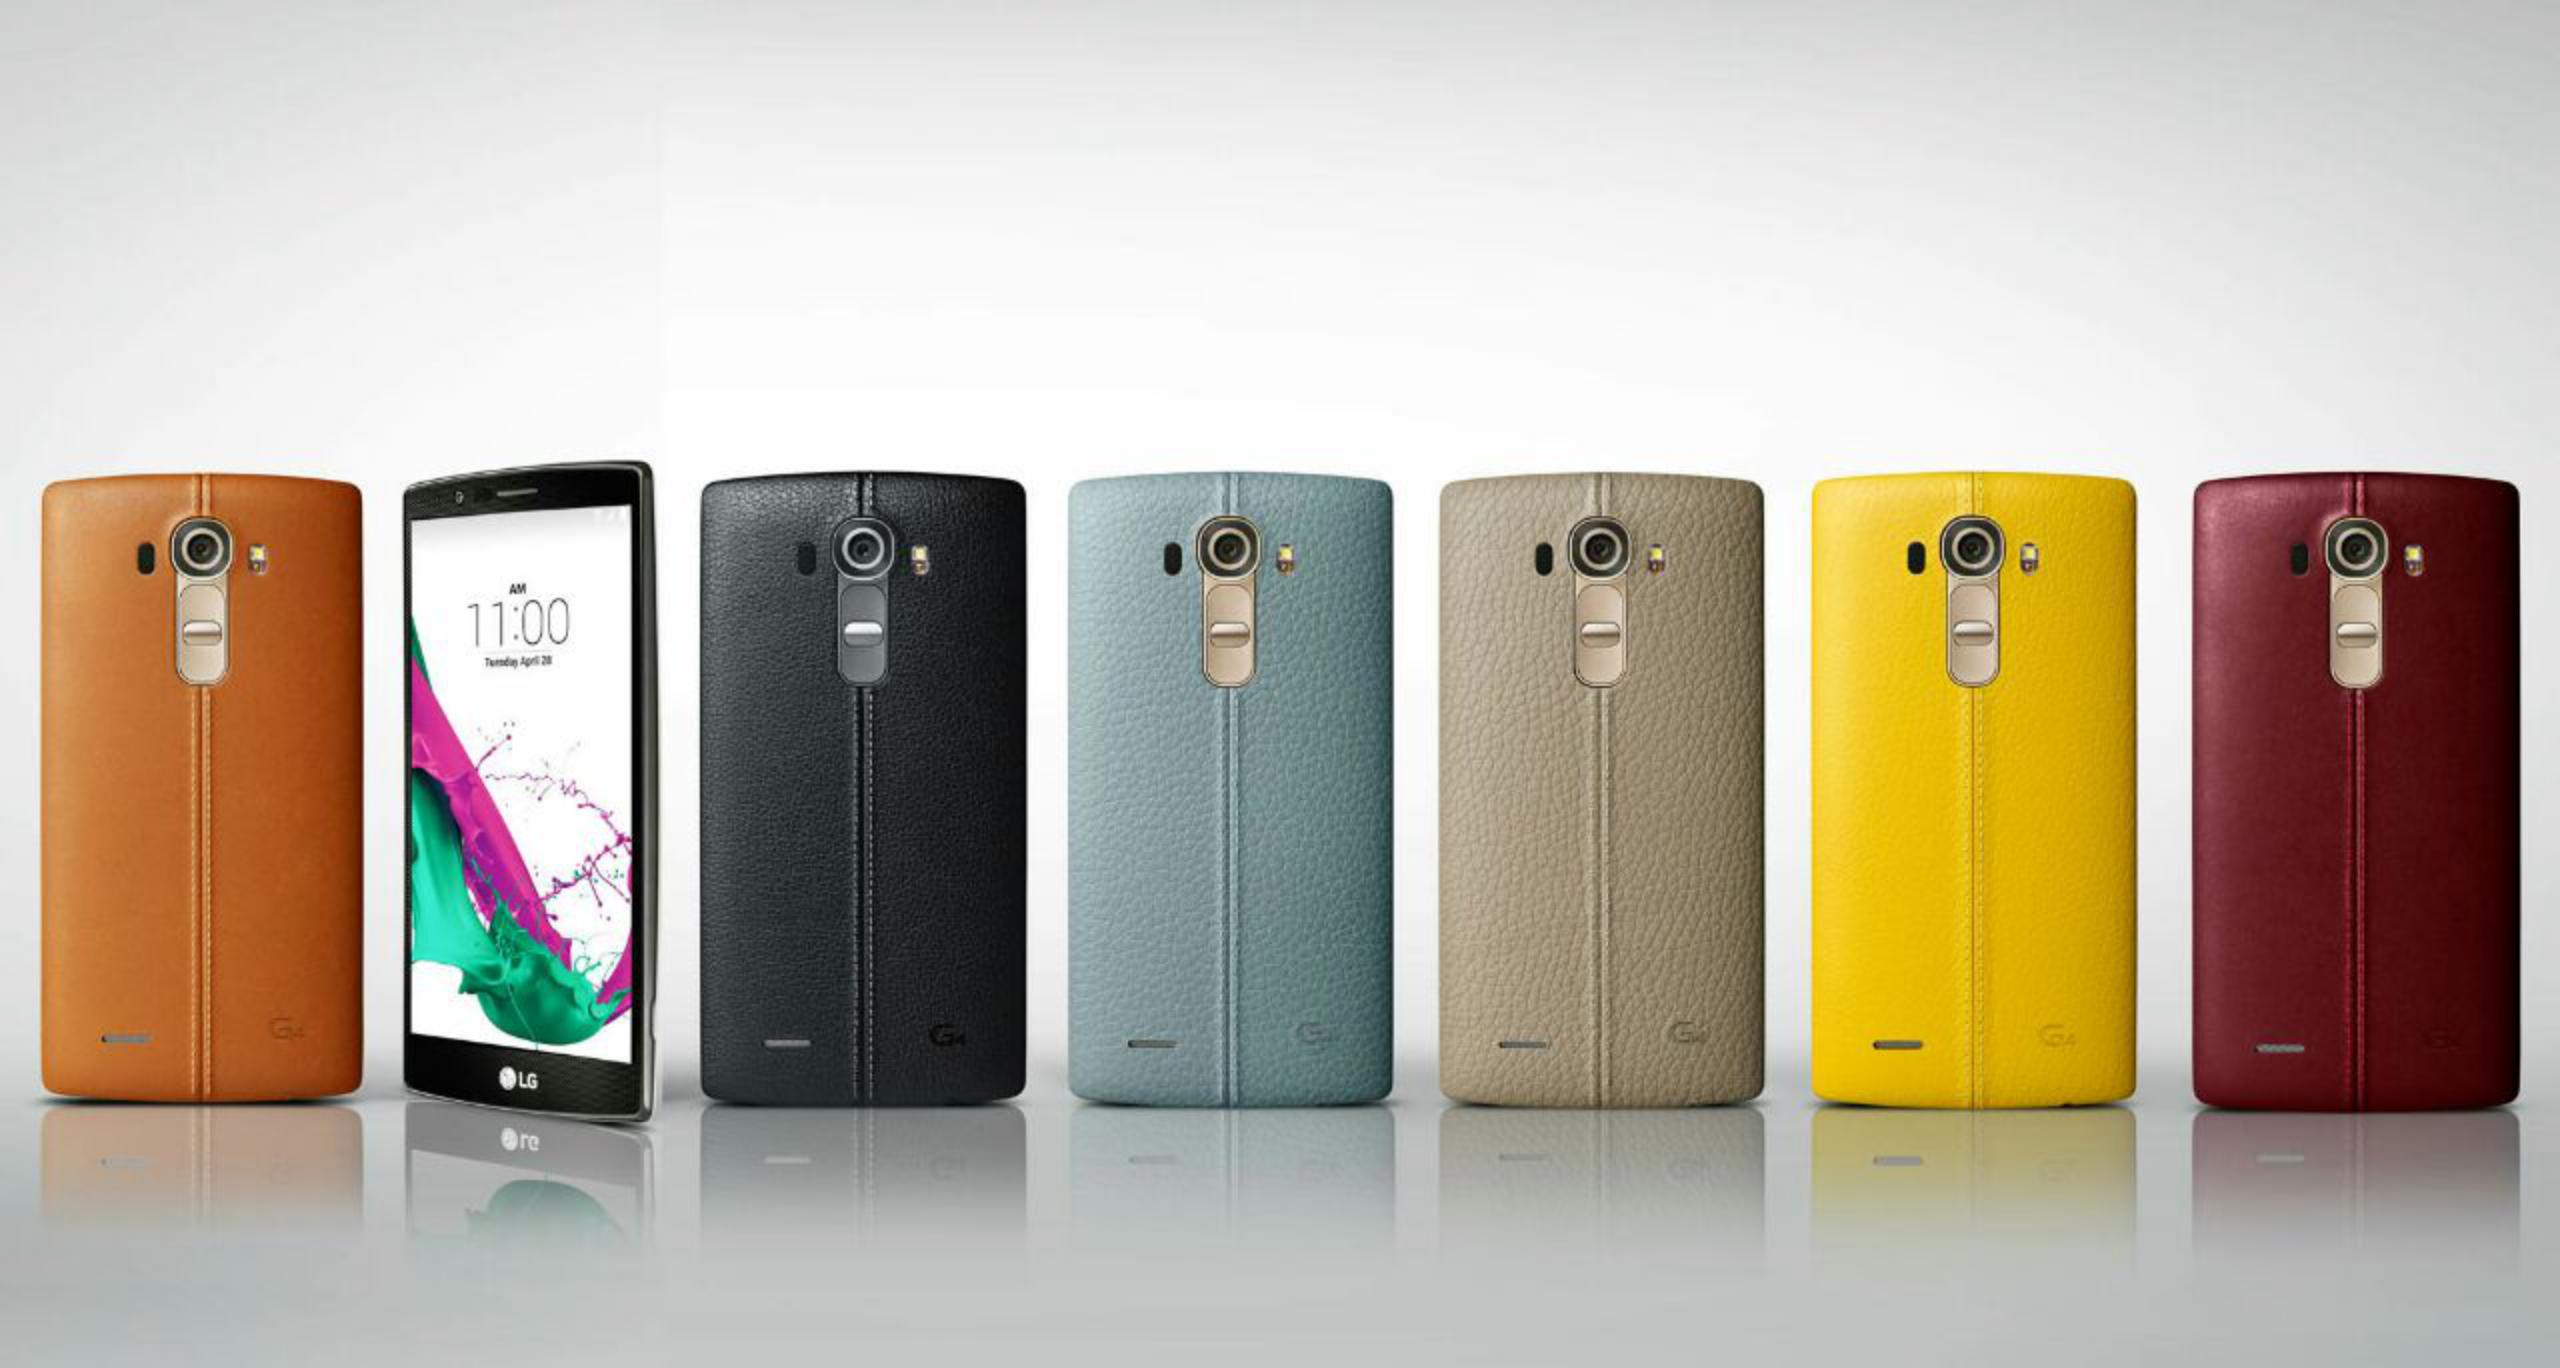 The LG G4 will be updated to Android 5.1.1 Lollipop 1